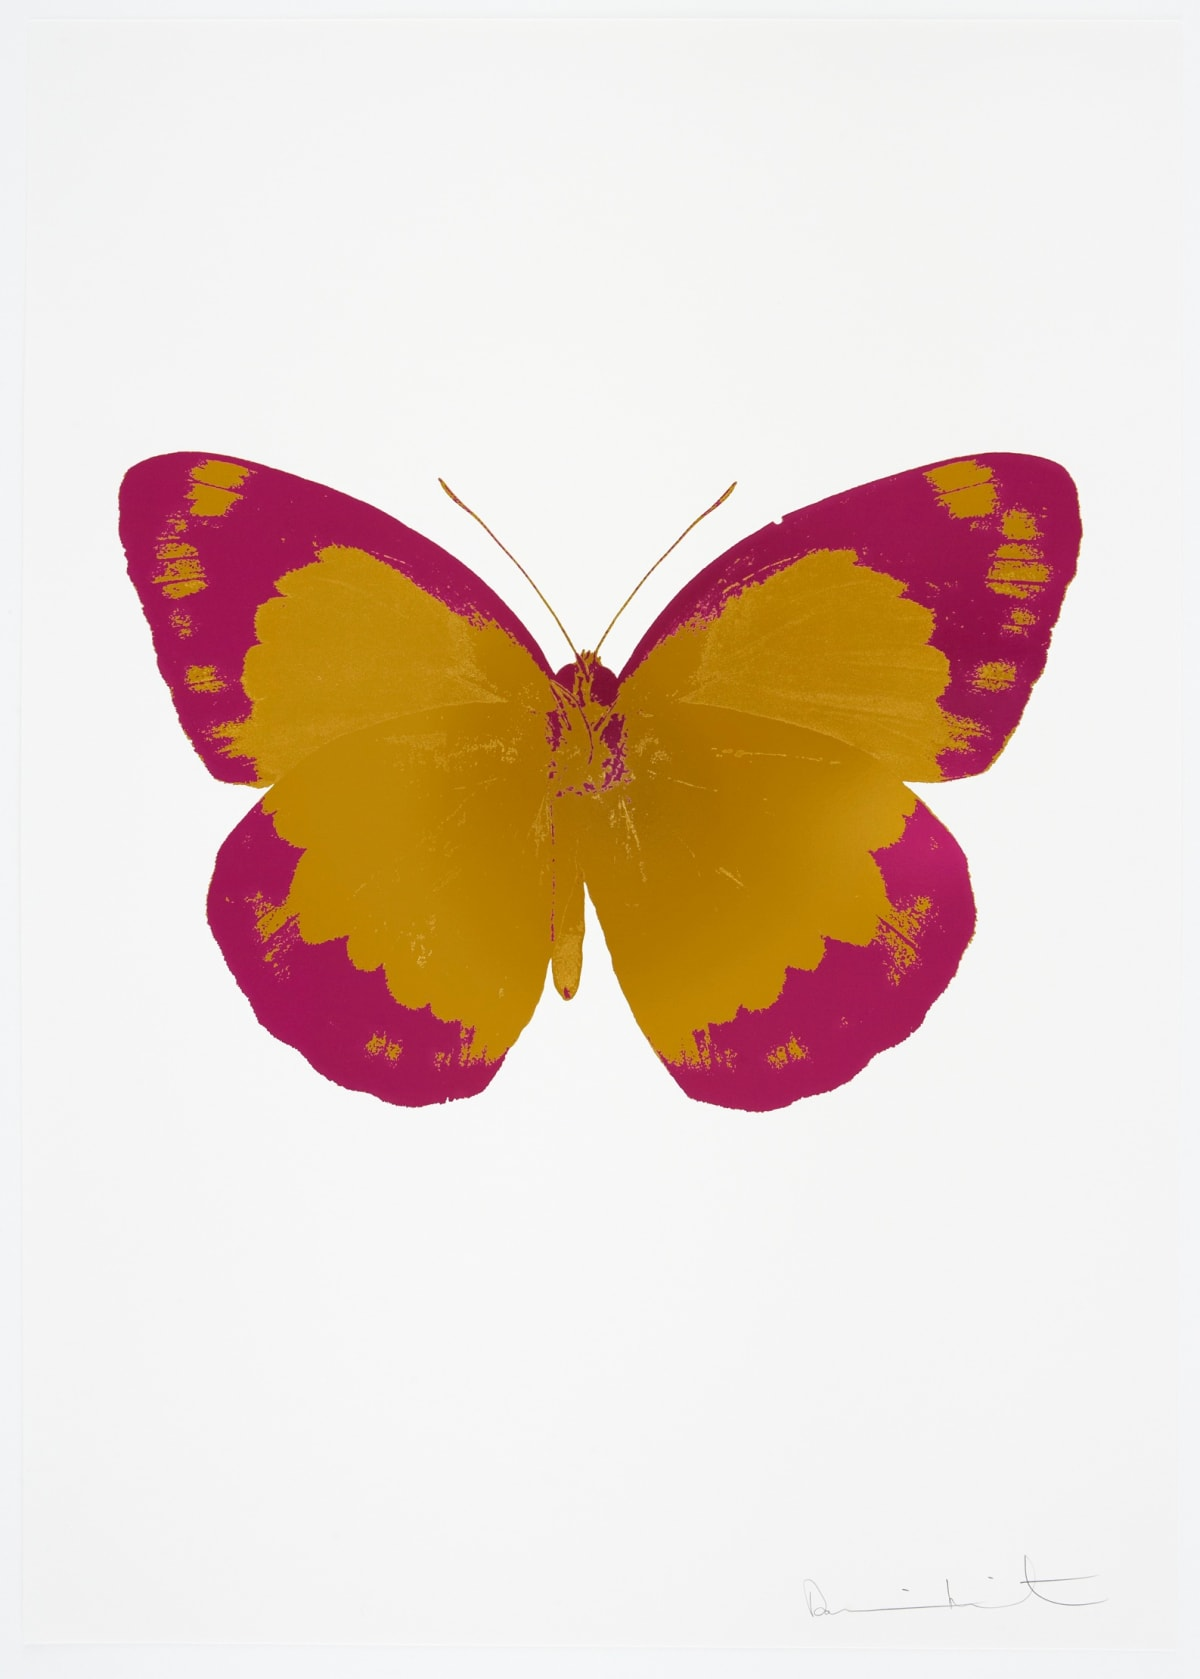 Damien Hirst The Souls II - Paradise Copper/Fuchsia Pink/Blind Impression, 2010 2 colour foil block on 300gsm Arches 88 archival paper. Signed and numbered. Published by Paul Stolper and Other Criteria 72 x 51cm OC7837 / 658-20 Edition of 15